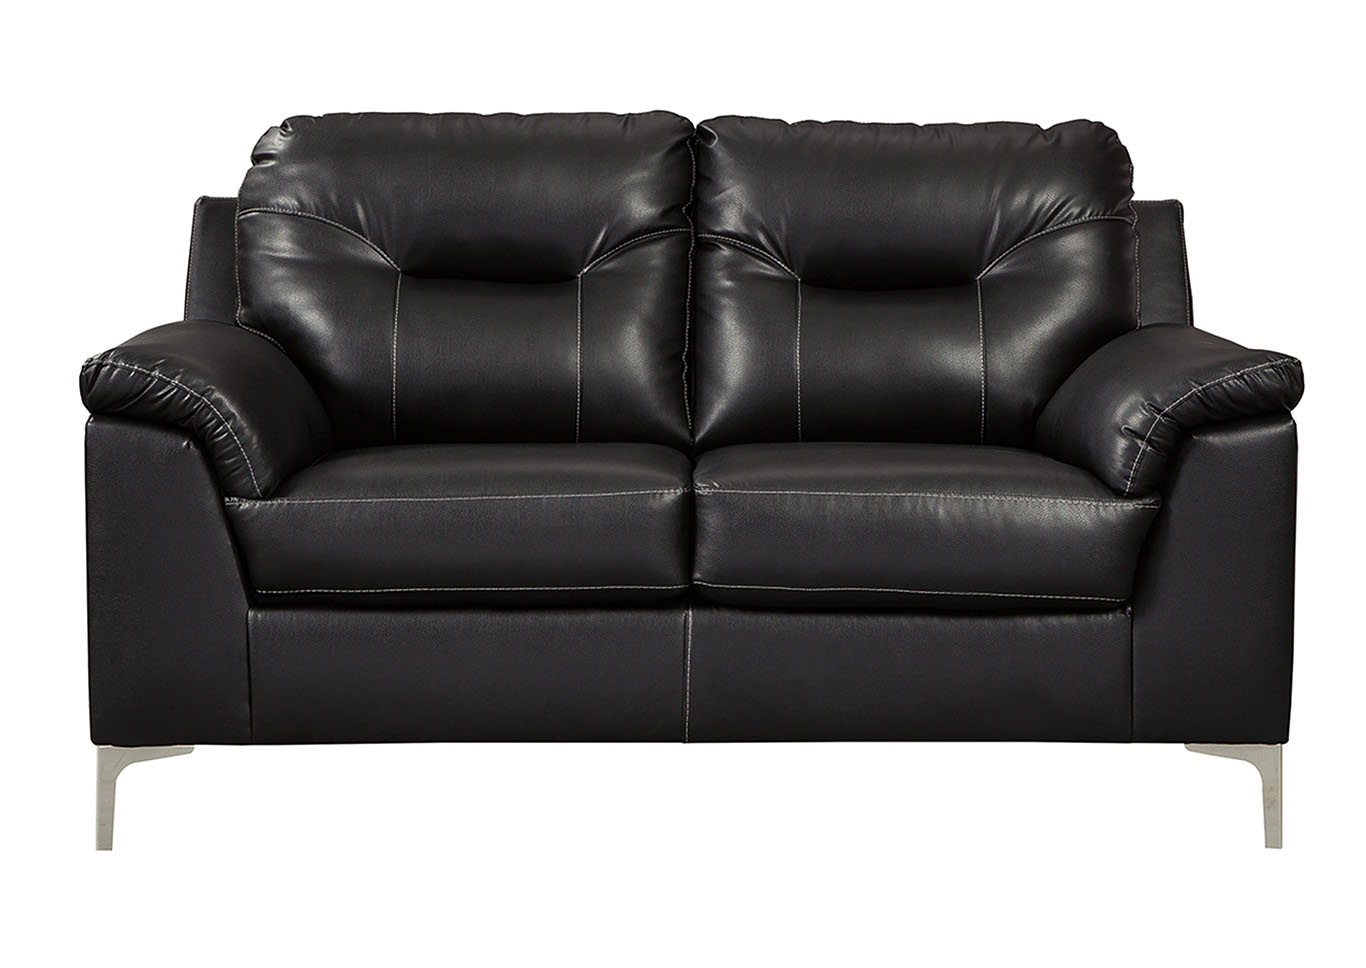 Tensas Black Loveseat,Signature Design By Ashley